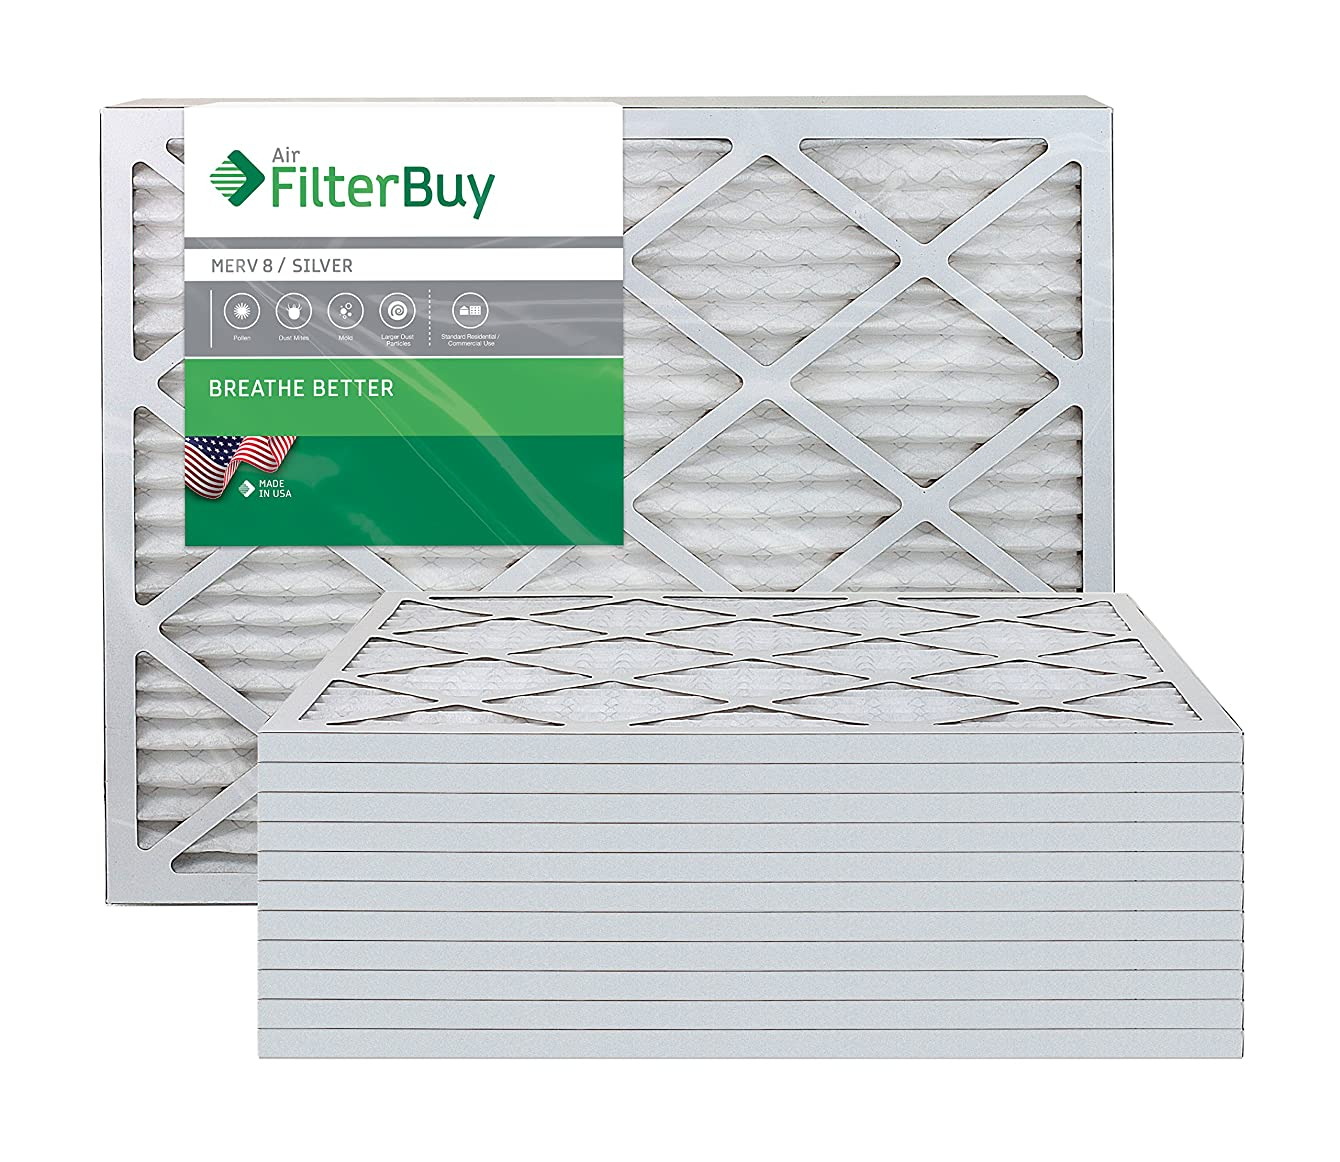 FilterBuy 20x23x1 MERV 8 Pleated AC Furnace Air Filter, (Pack of 12 Filters), 20x23x1 – Silver